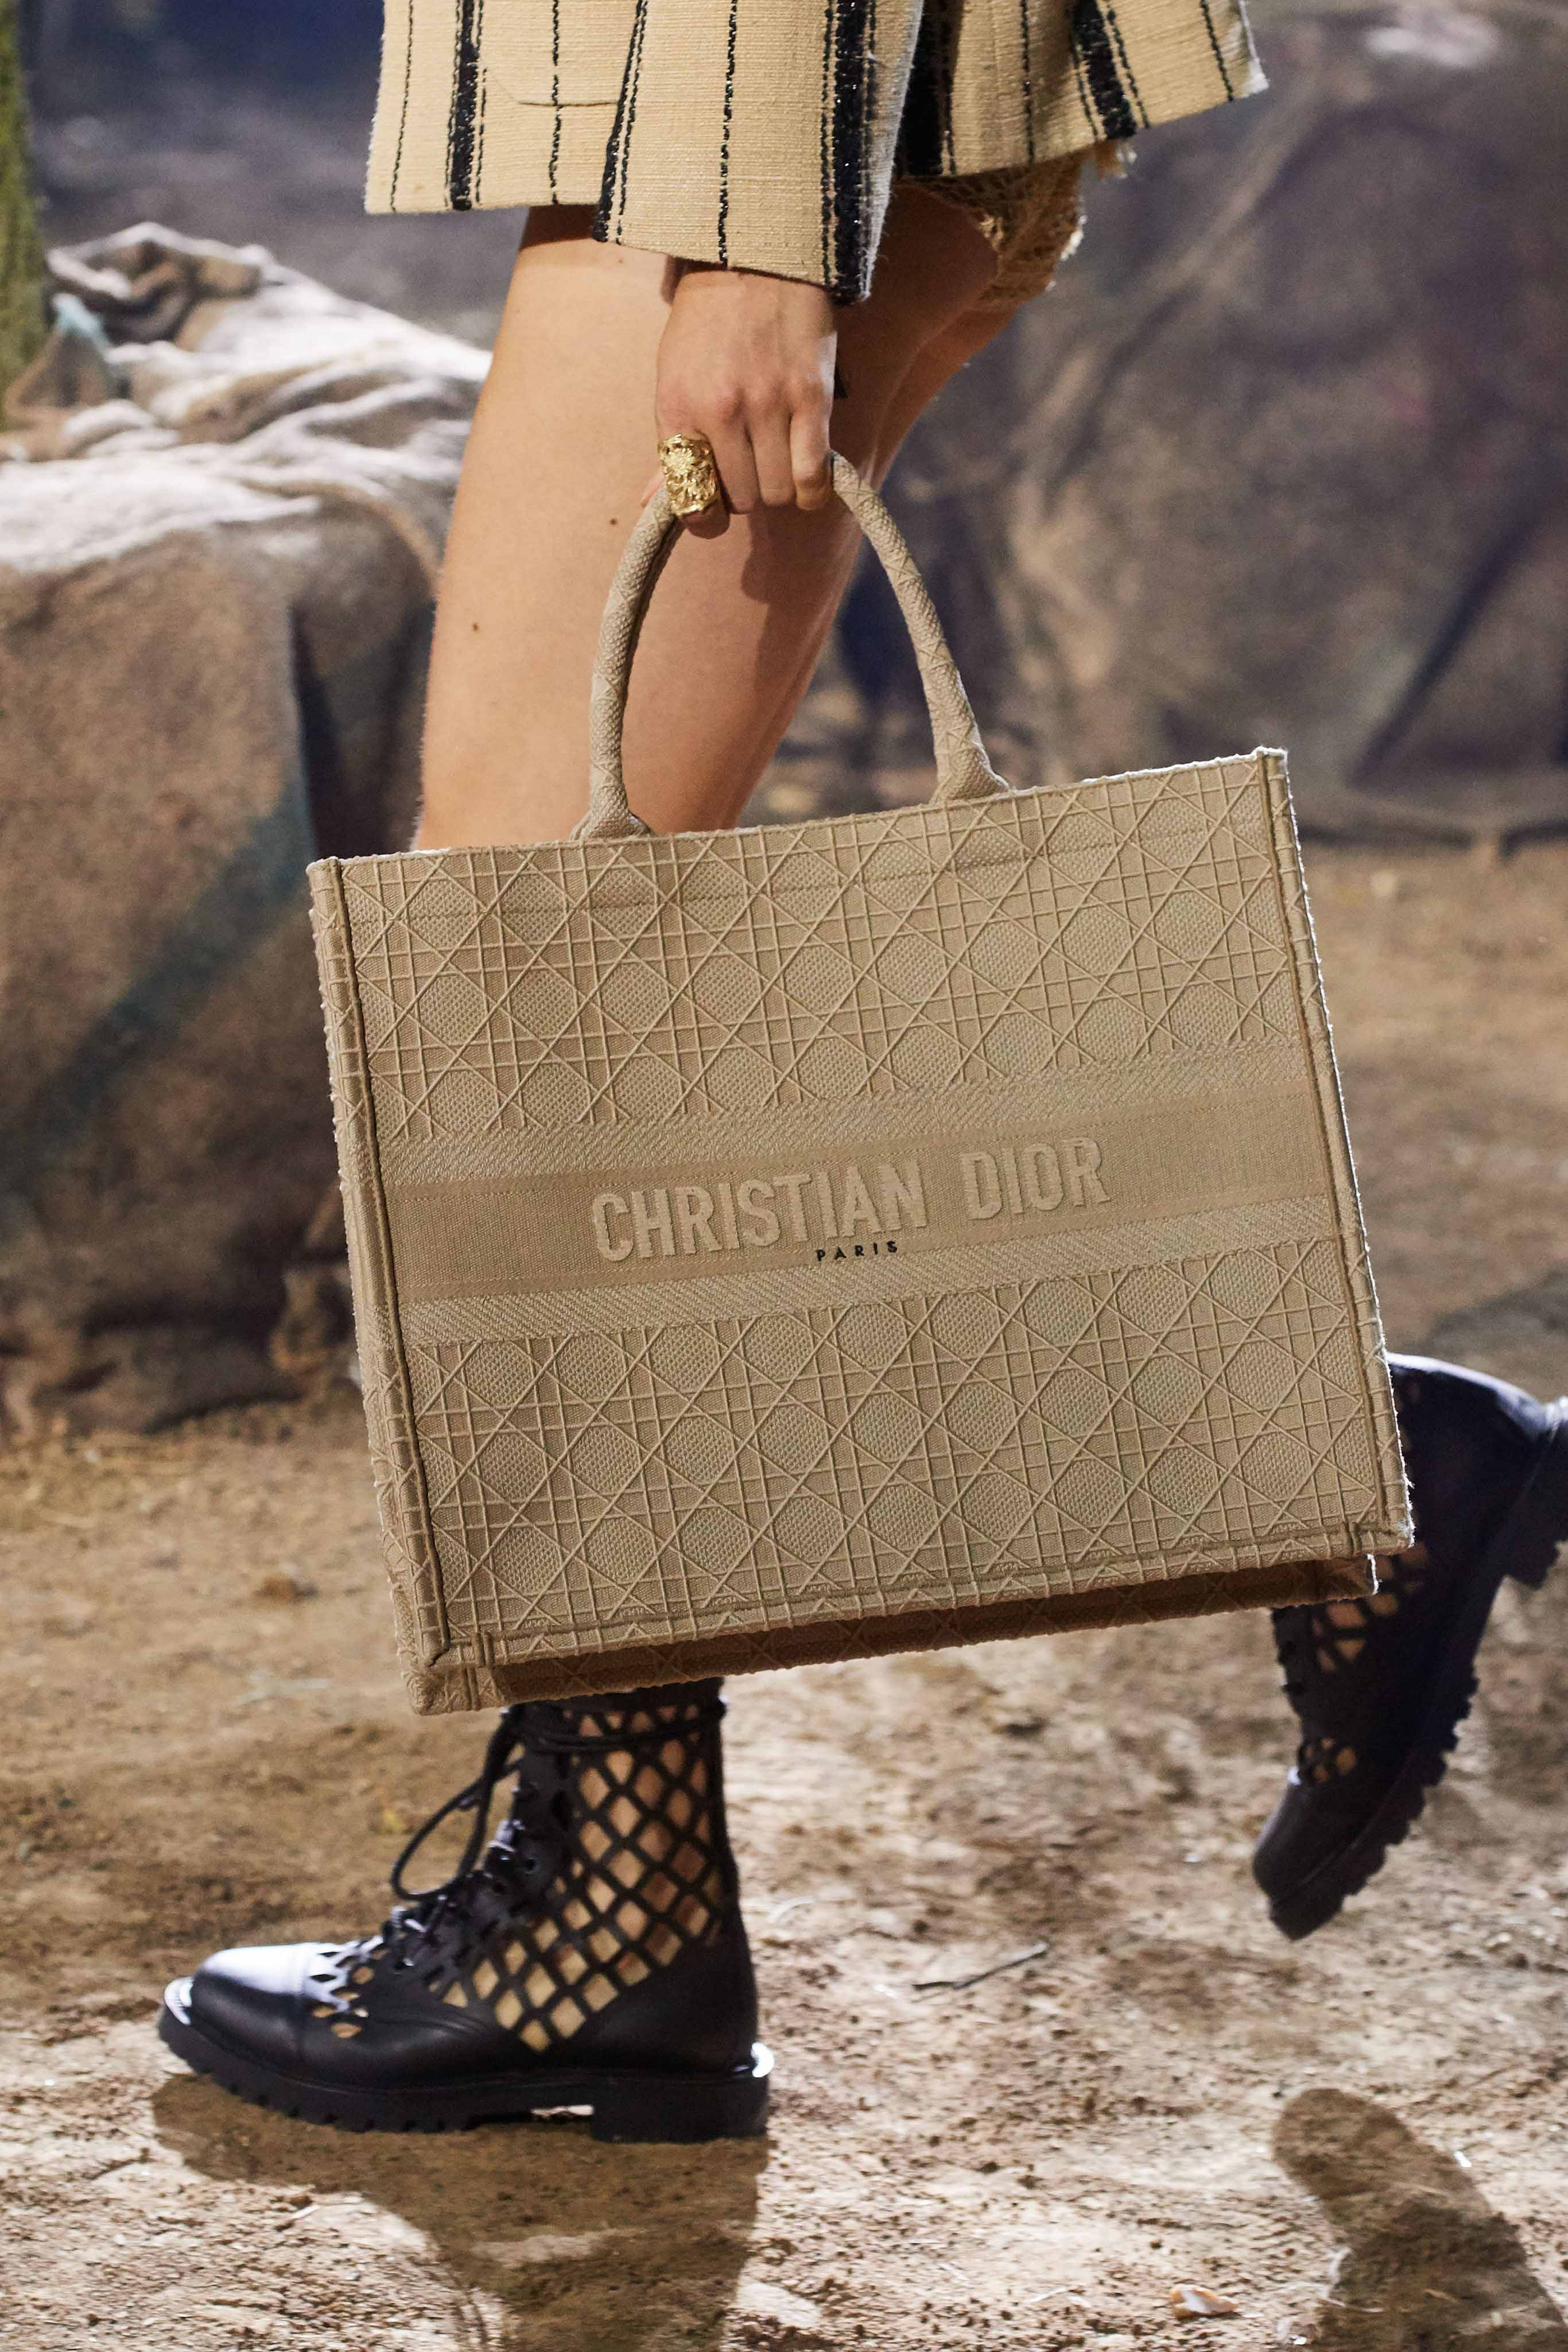 Christian Dior Spring Summer 2020 SS2020 trends runway coverage Ready To Wear Vogue details bag canvas